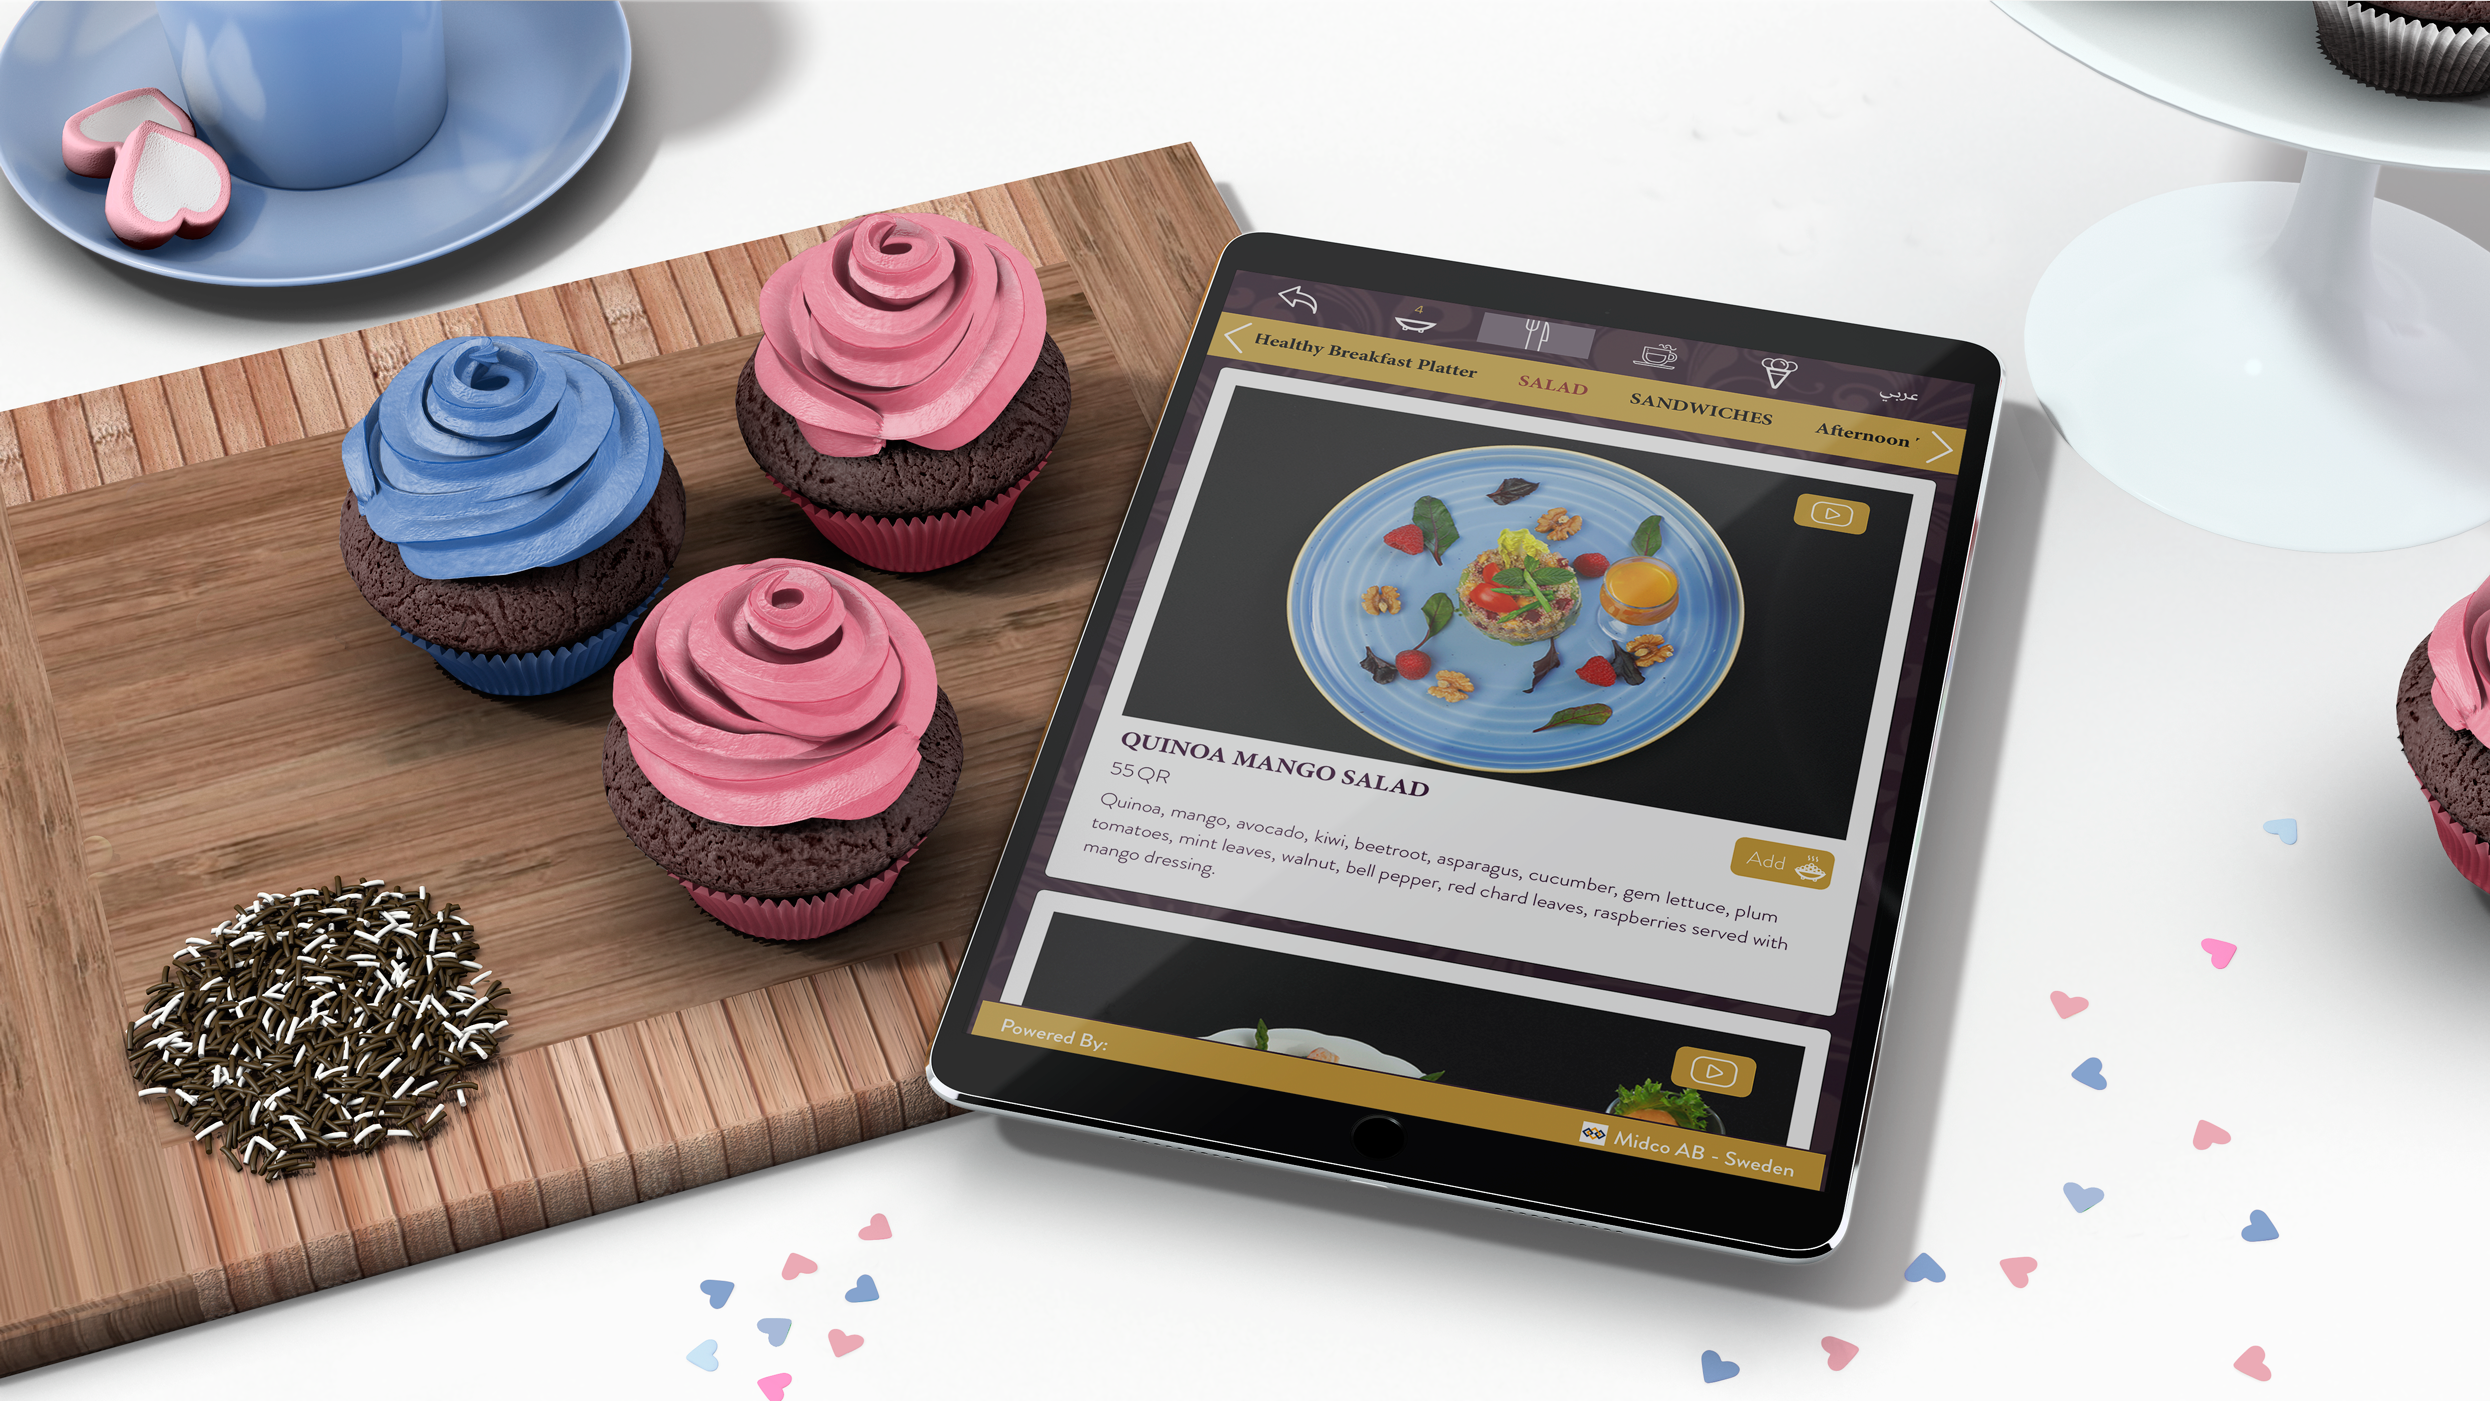 Menu 5in1 On Tablet